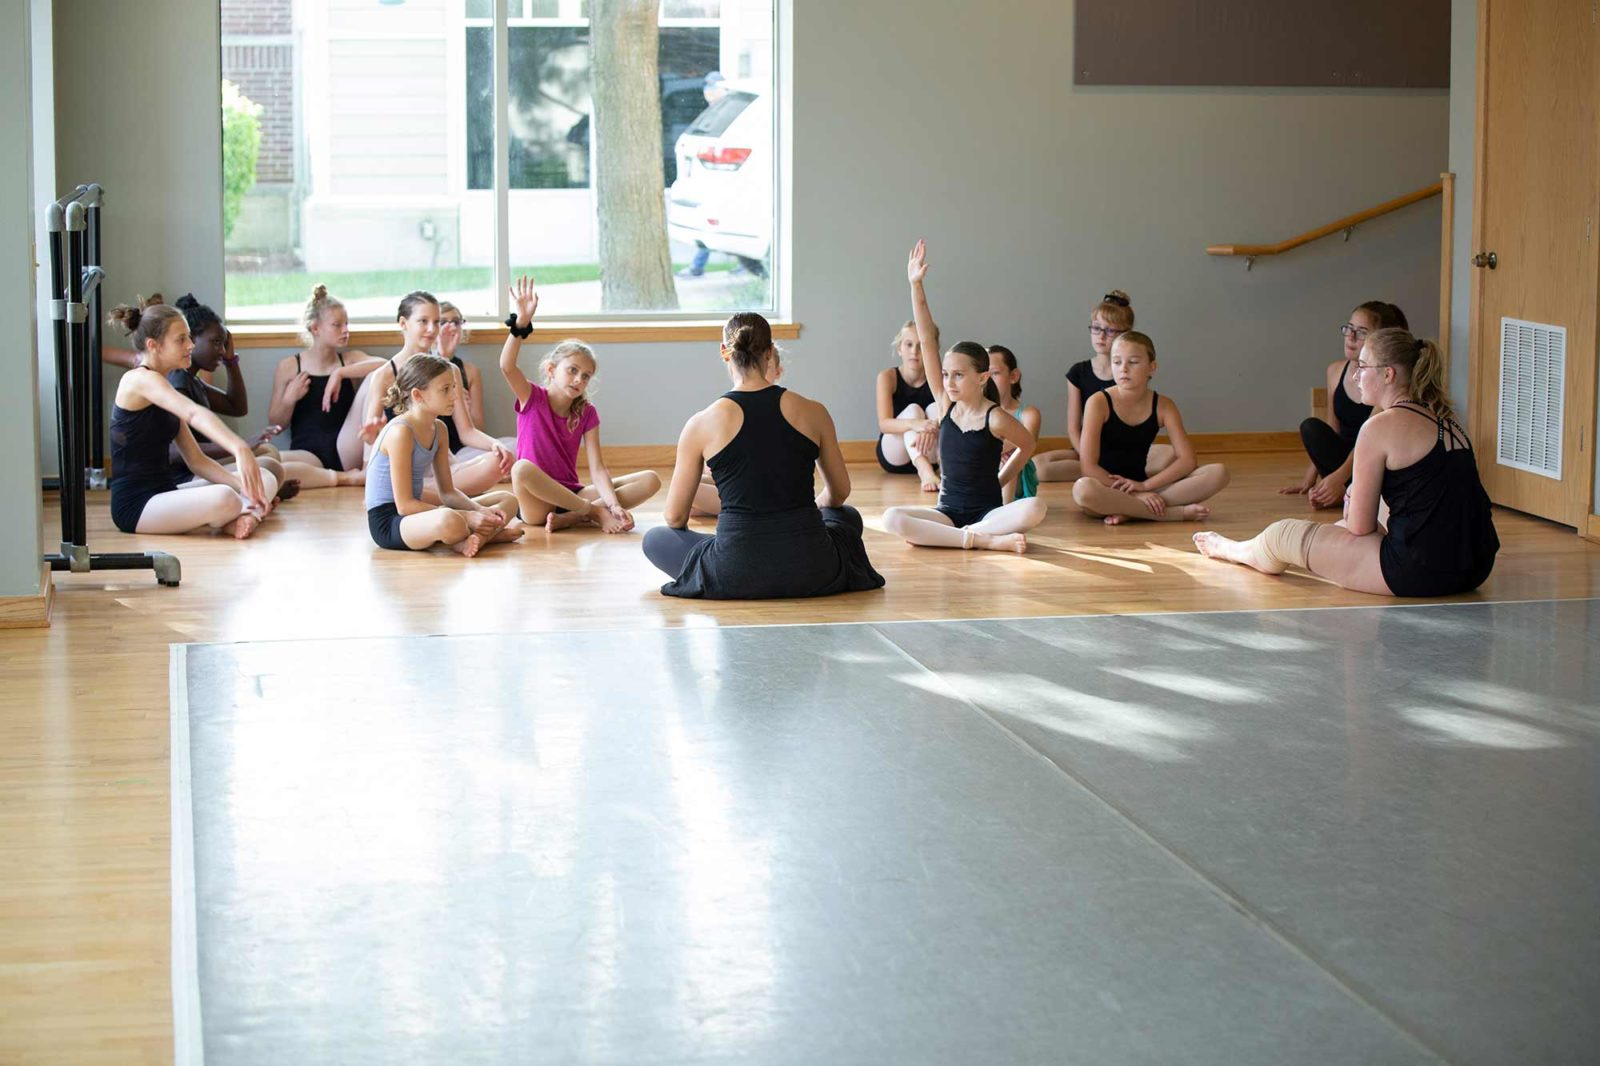 Teacher talking to dancers while sitting on the floor